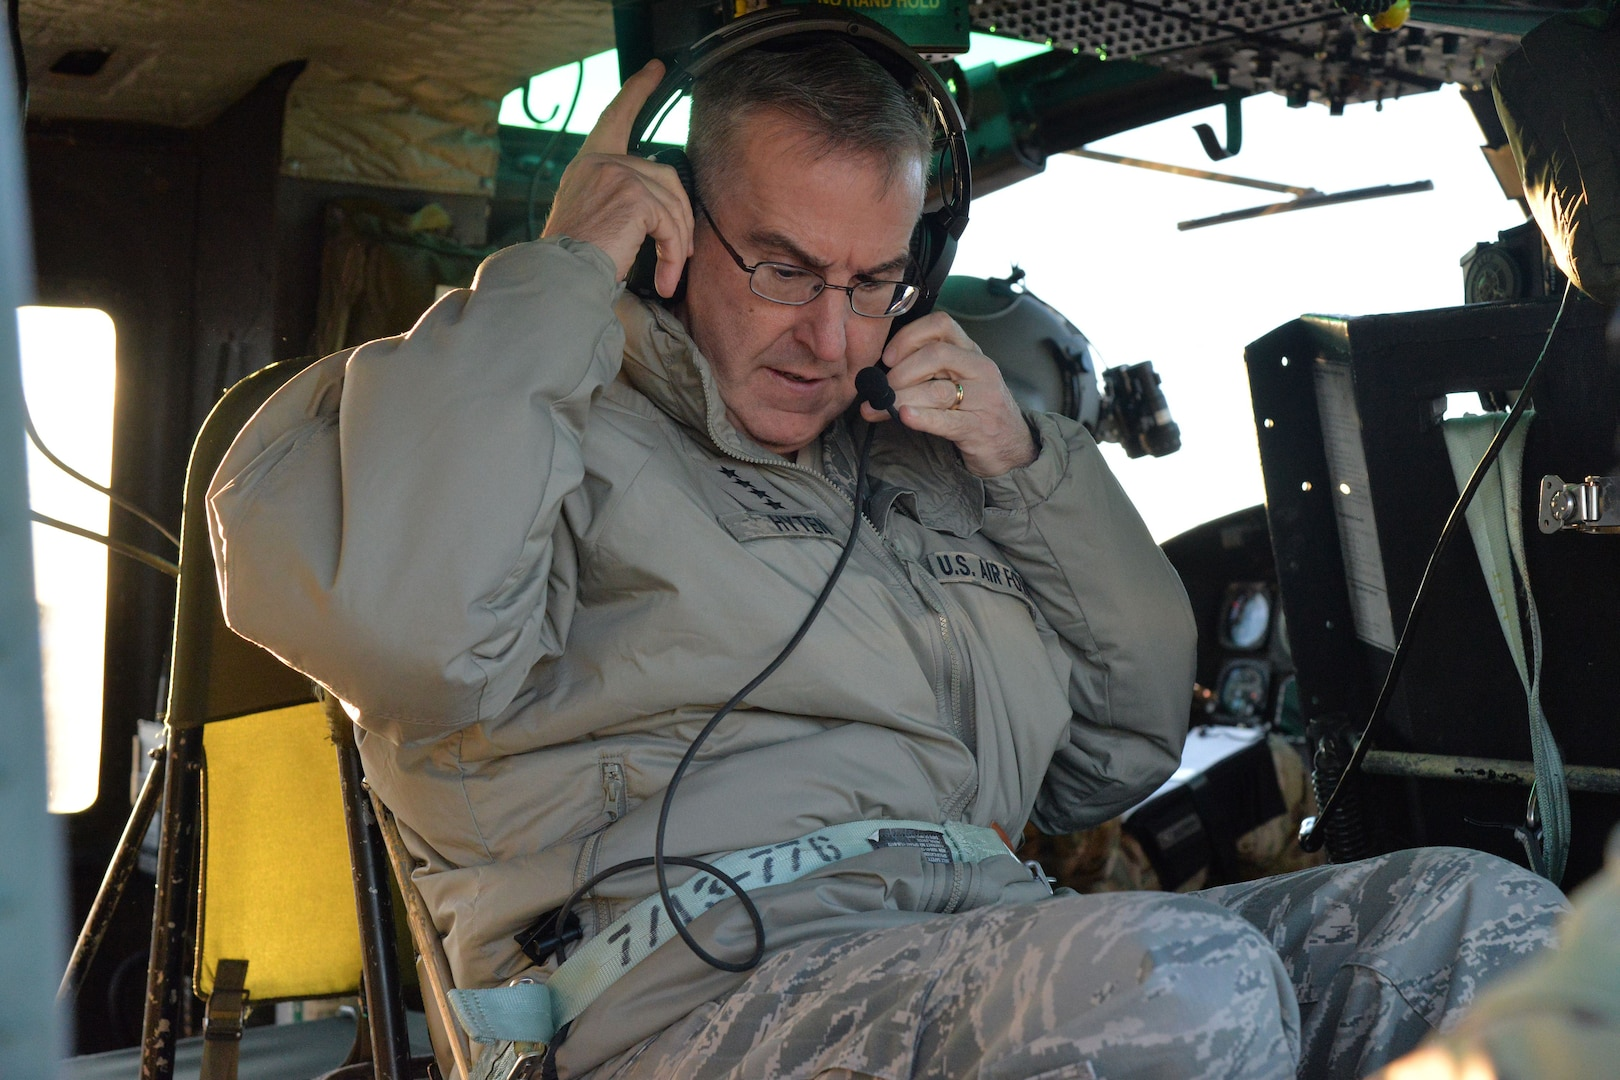 U.S. Air Force Gen. John Hyten, commander of U.S. Strategic Command (USSTRATCOM), checks his equipment before flying in a UH-1N Huey rotary aircraft at Malmstrom Air Force Base, Mont., Jan. 16, 2018.